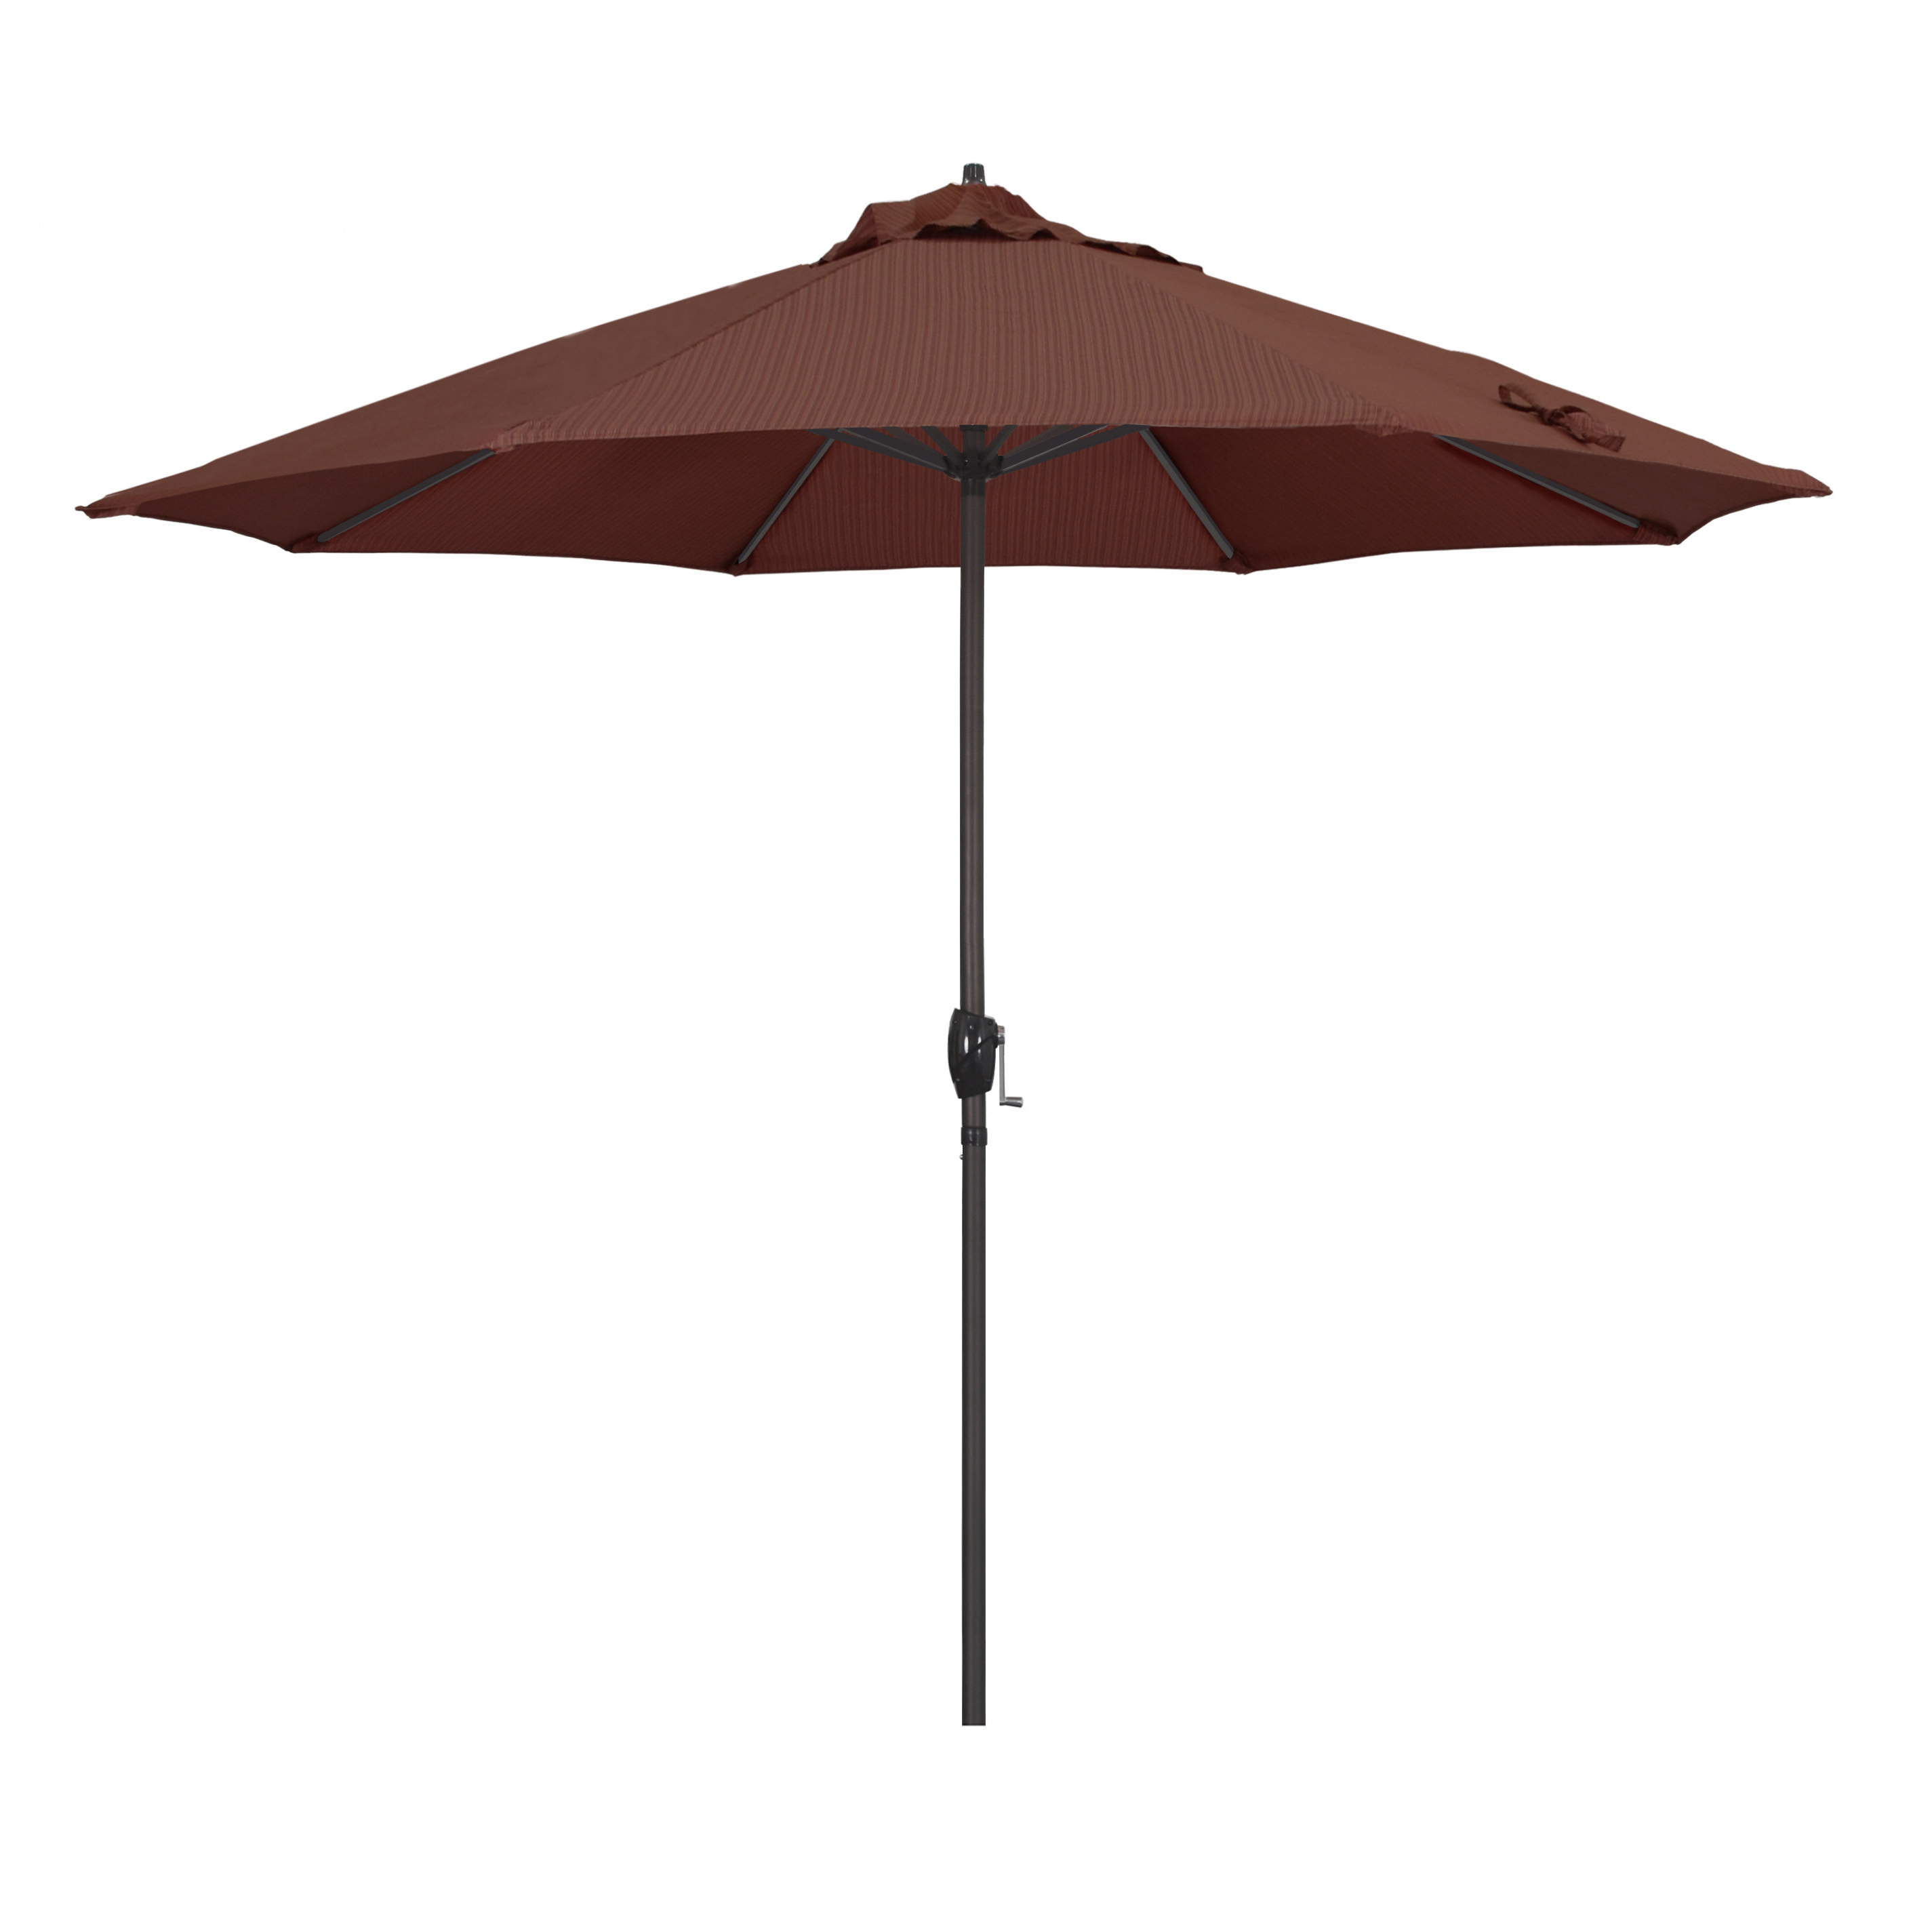 Maglione Fabric 4cantilever Umbrellas For Best And Newest Sol 72 Outdoor Cardine 9' Market Umbrella (View 20 of 20)